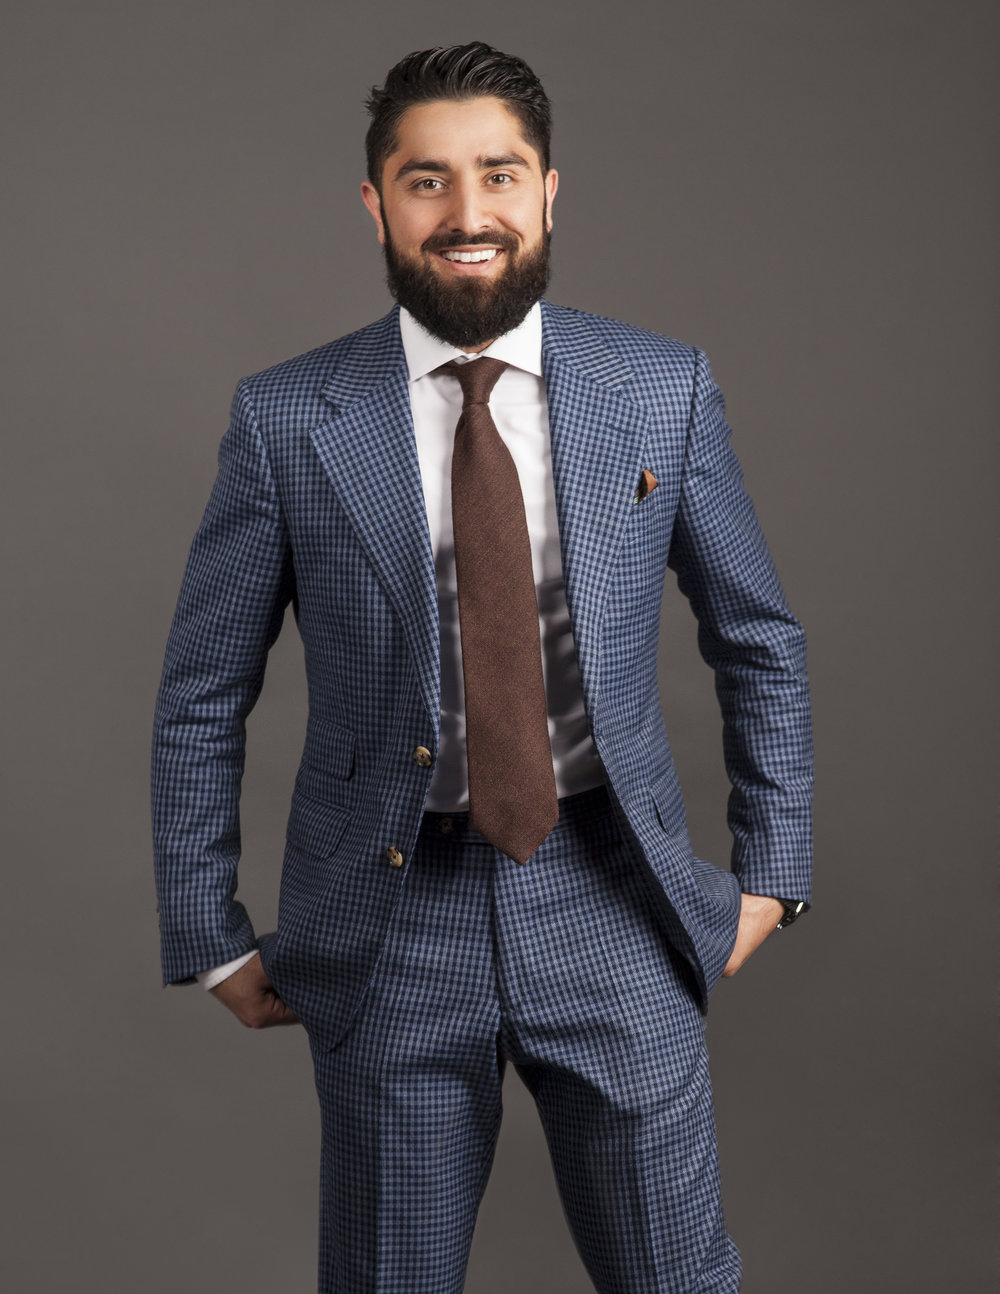 A Million Vibes - Million Dollar Listing star, Roh Habibi needed some updated photographs for his brand. We worked closely with his agents to portray his personality in a raw and polished sense, and highlighted his ever-impressive style.